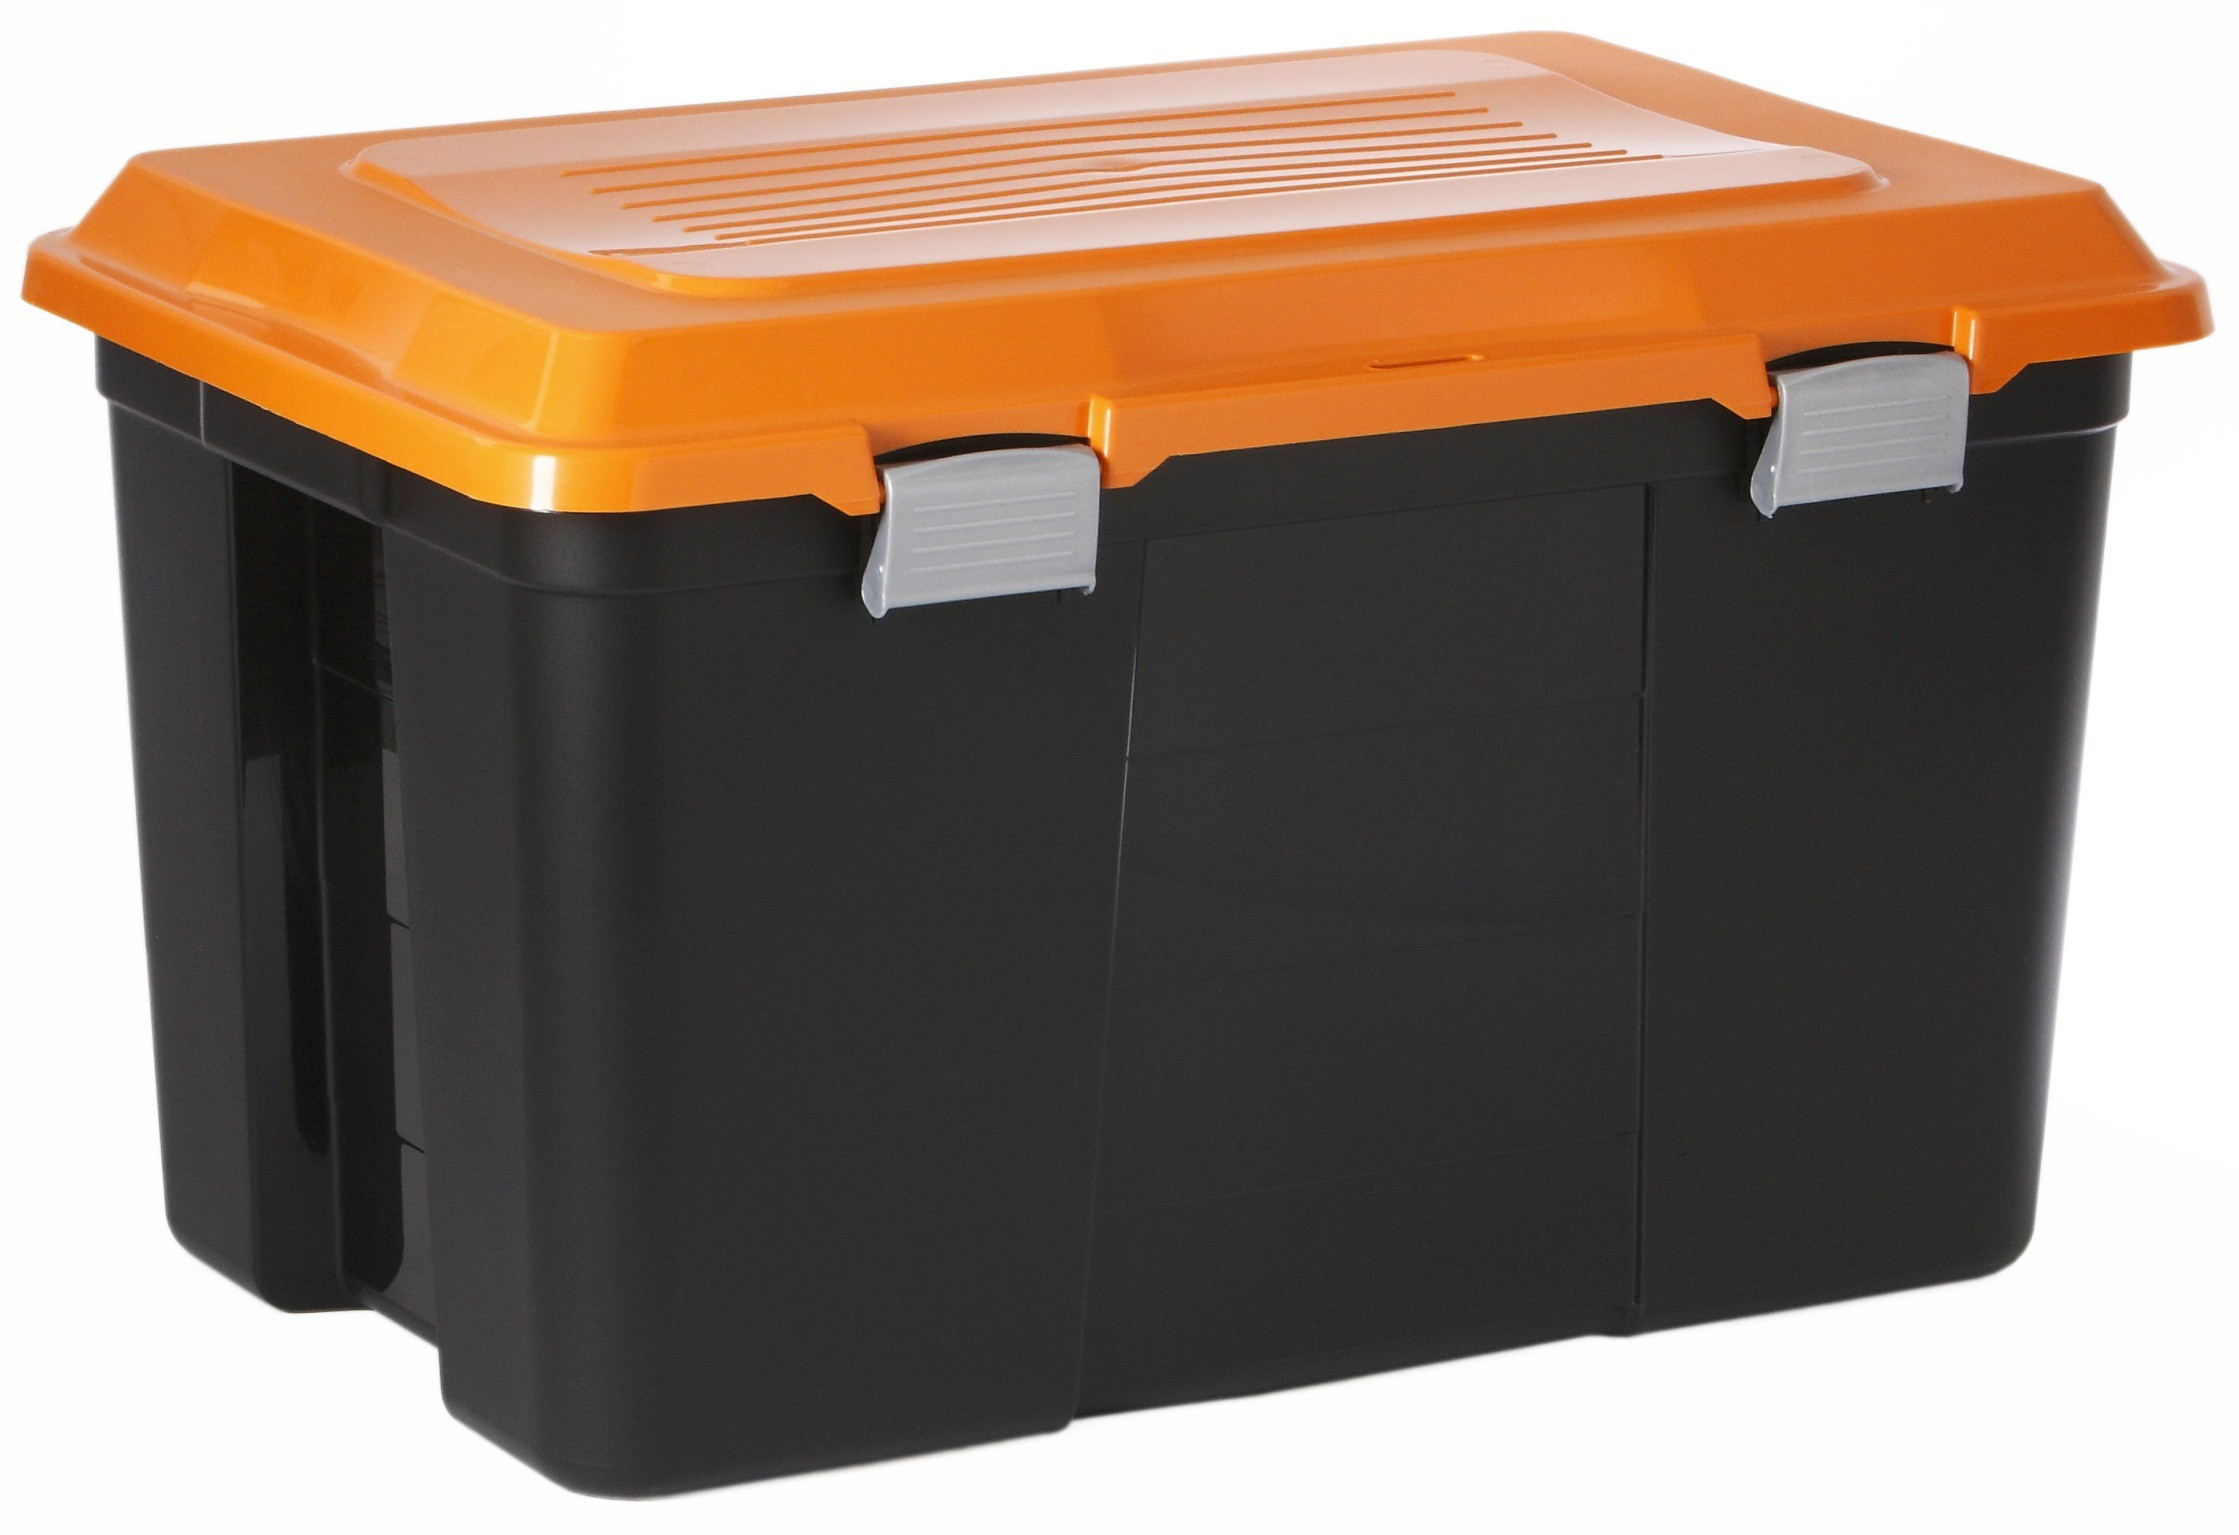 rotho packer box 60 liter farbe schwarz orange online kaufen. Black Bedroom Furniture Sets. Home Design Ideas